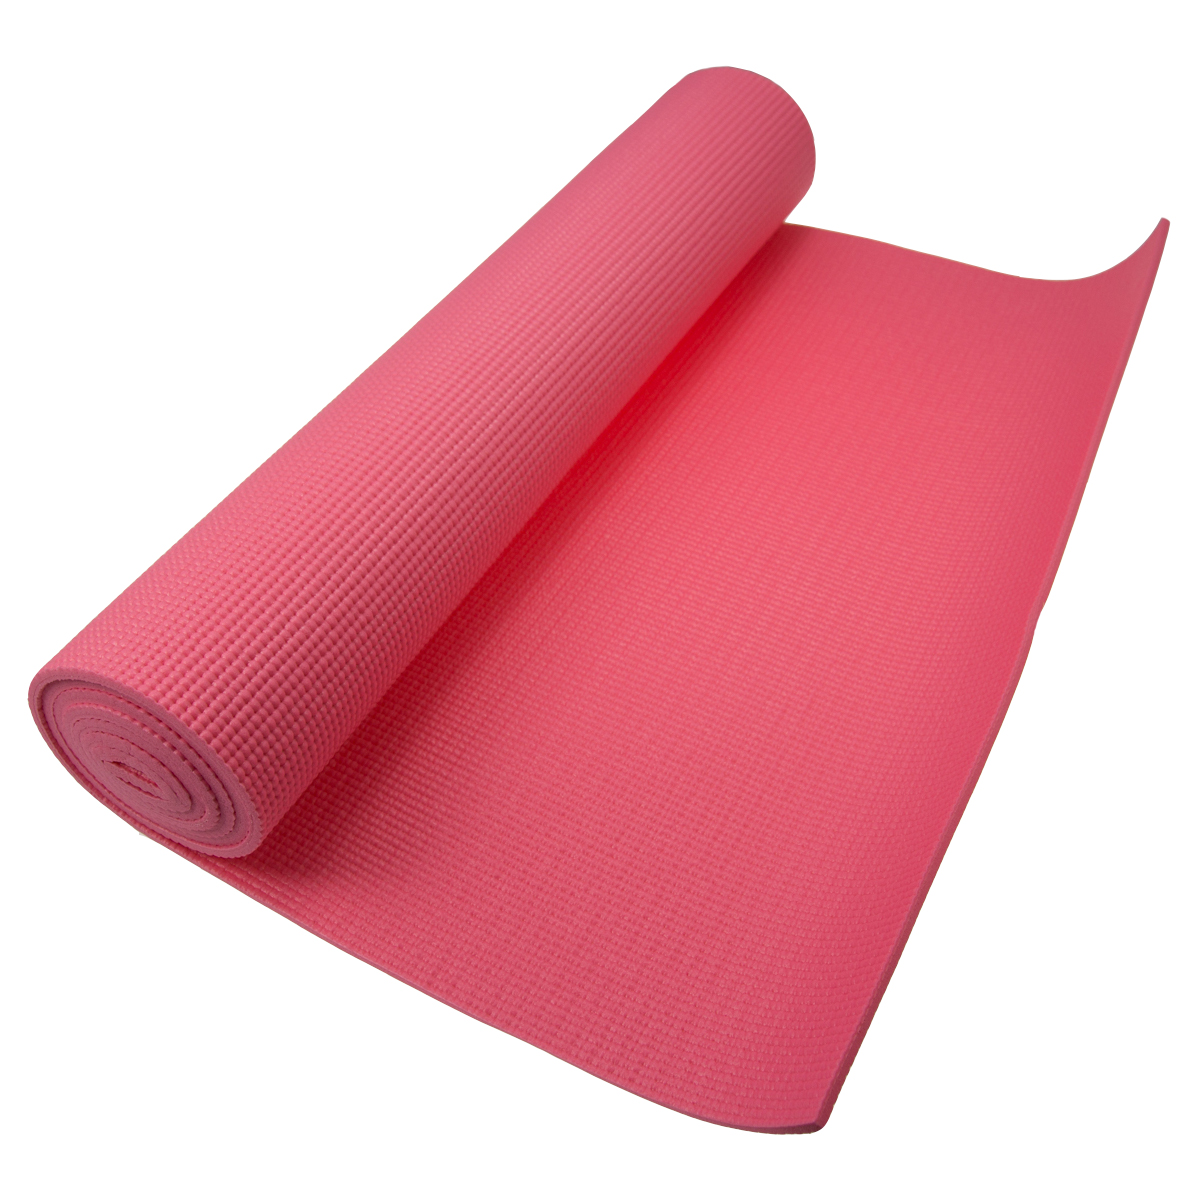 Eva Foam Yoga Mat 7mm Thick Soft Non-Slip Eco-Friendly Equipment For Men Women Exercise Fitness